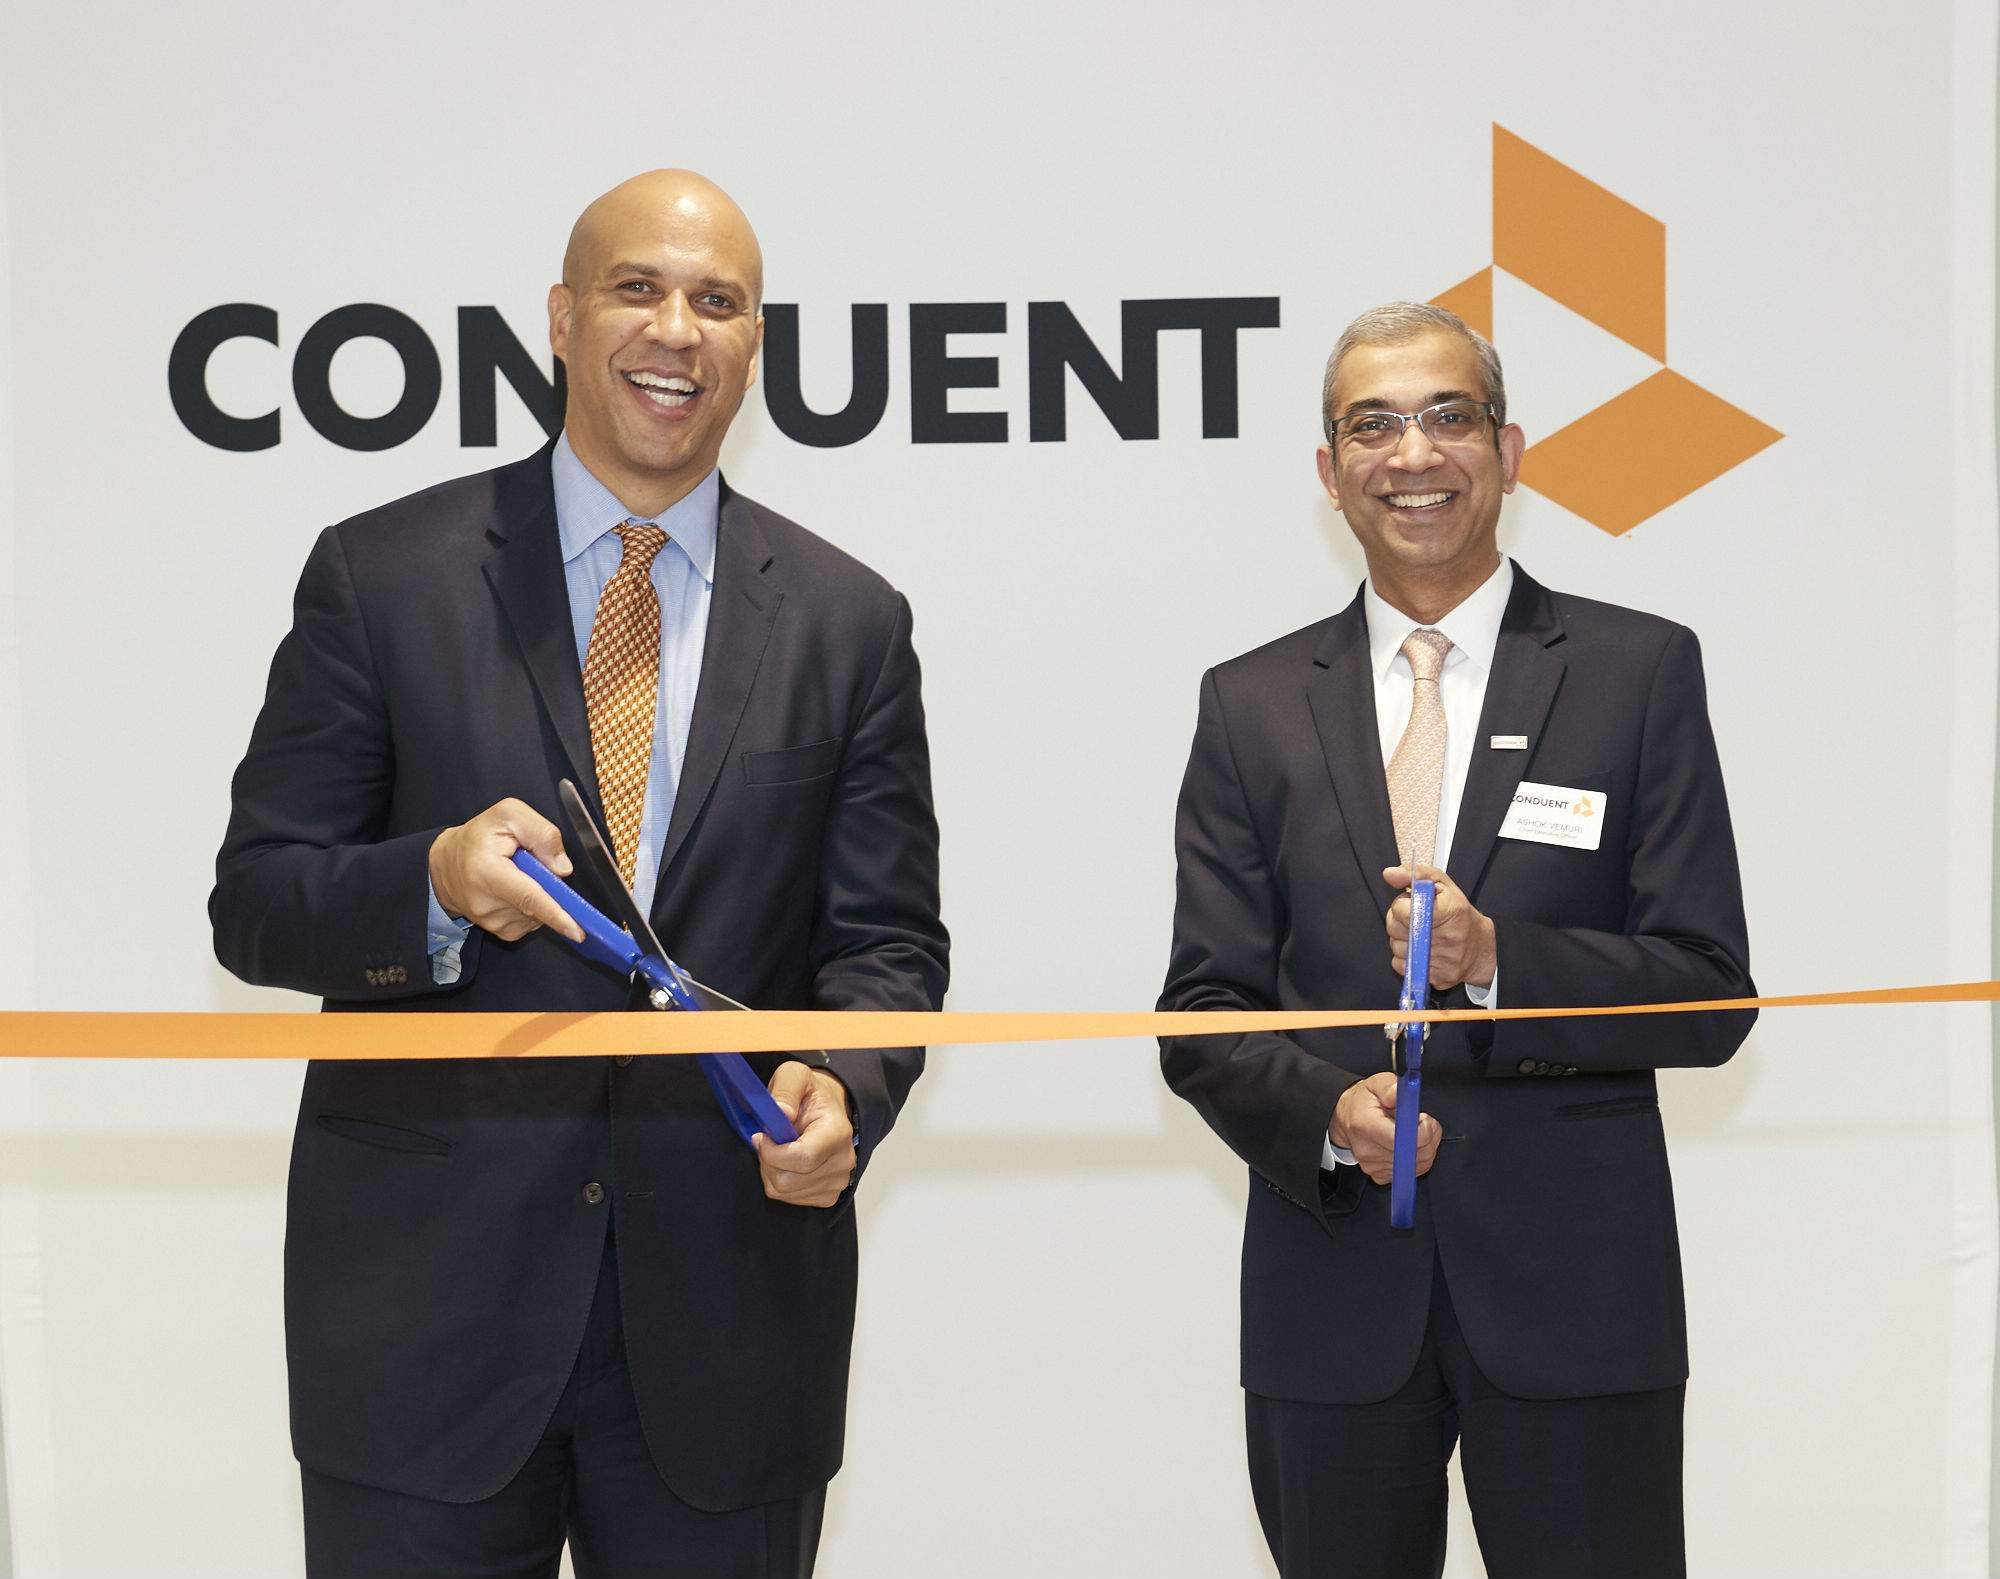 U.S. Sen. Cory Booker and Conduent CEO Ashok Vemuri cut the ribbon on Conduent's headquarters in Florham Park on June 2, 2017.